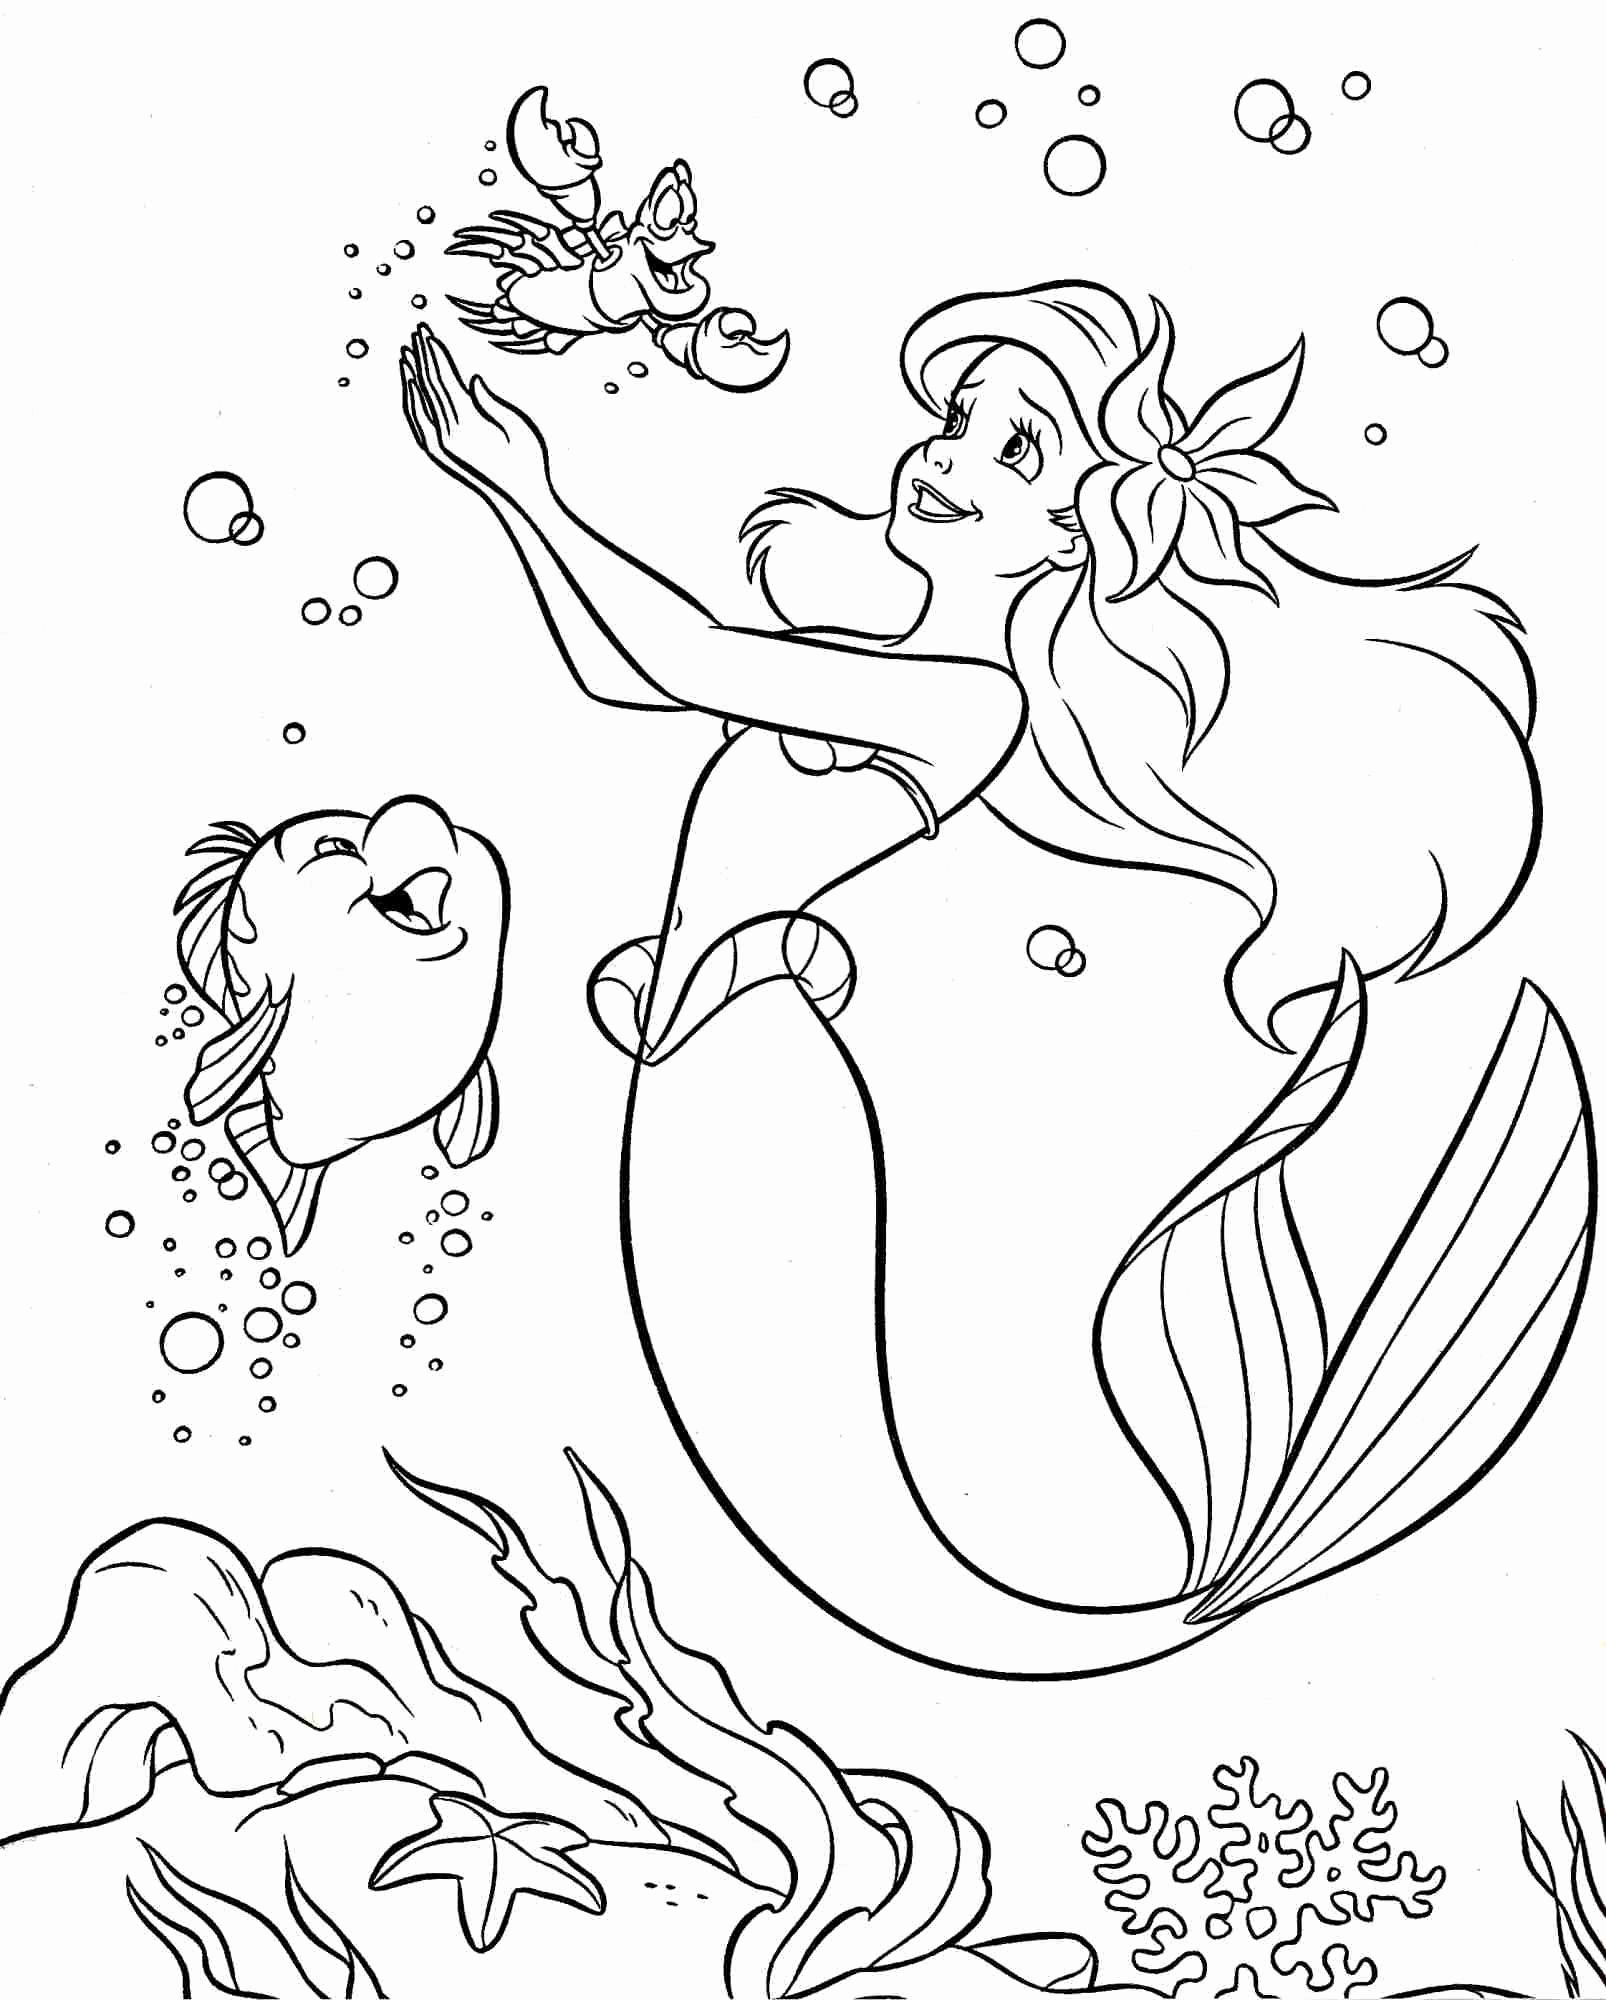 Best Coloring Pages For Kids Disney Areil In 2020 Free Disney Coloring Pages Ariel Coloring Pages Princess Coloring Pages